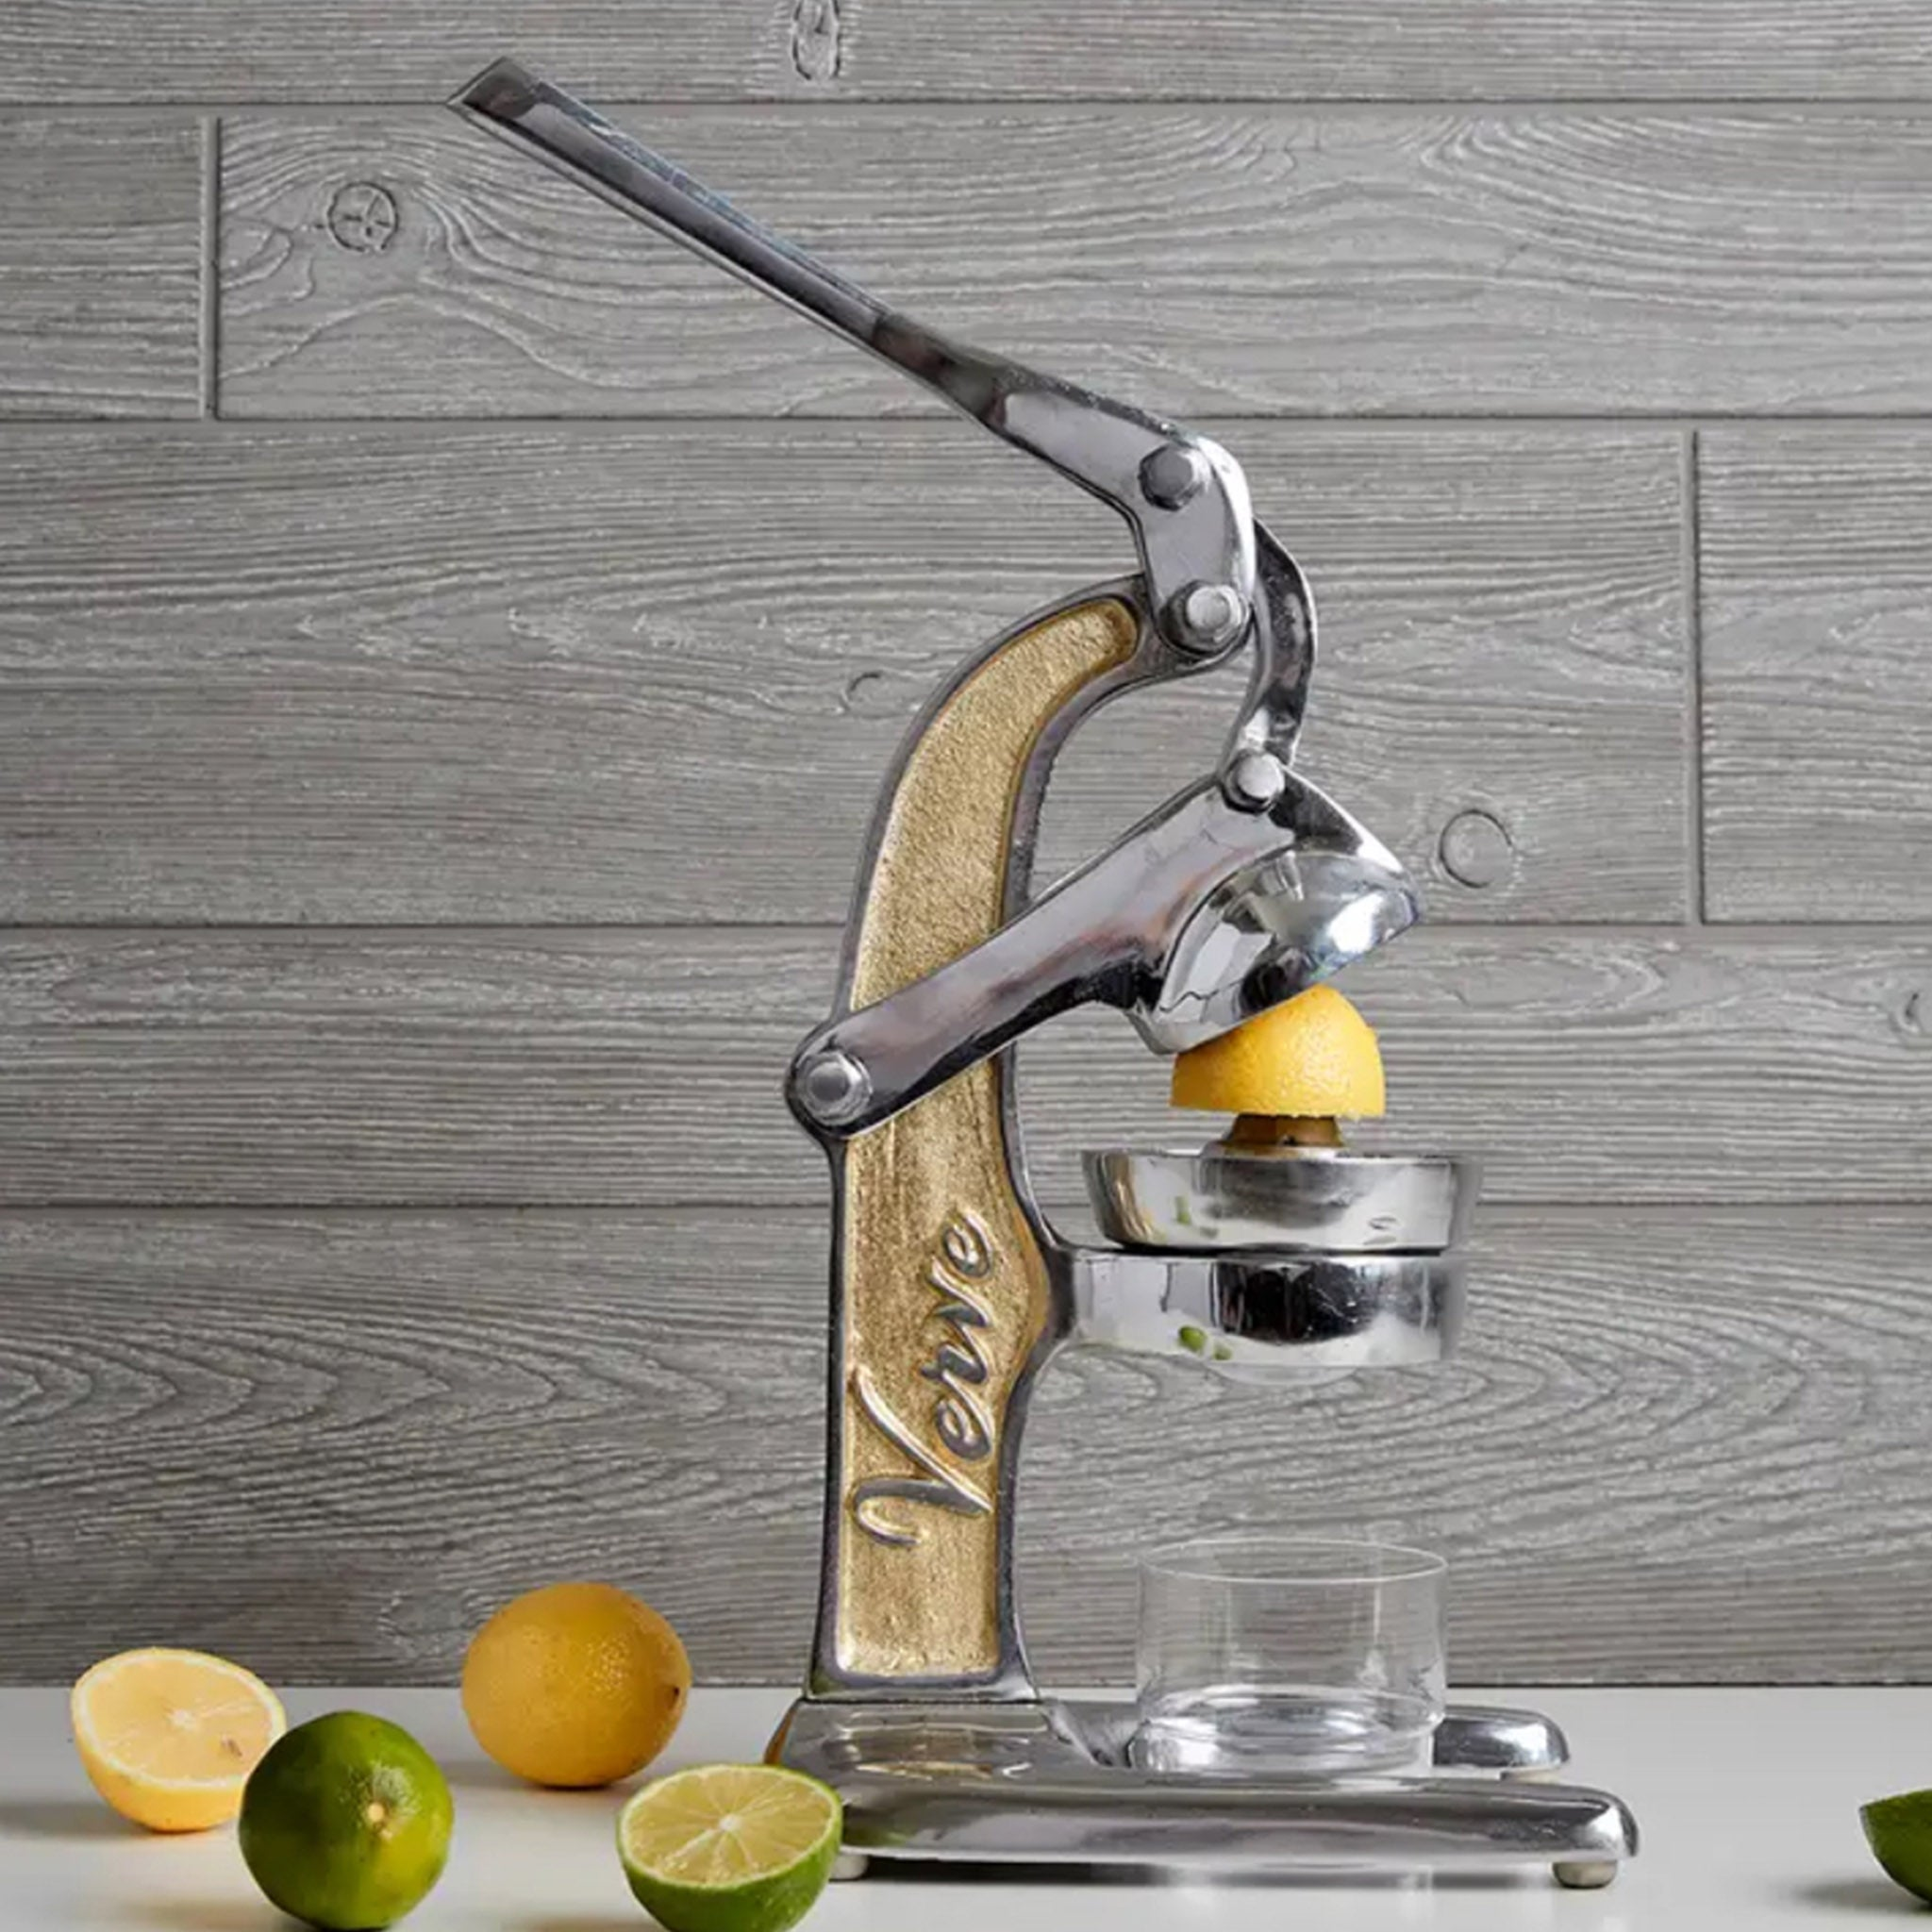 Authentic Citrus Juicer